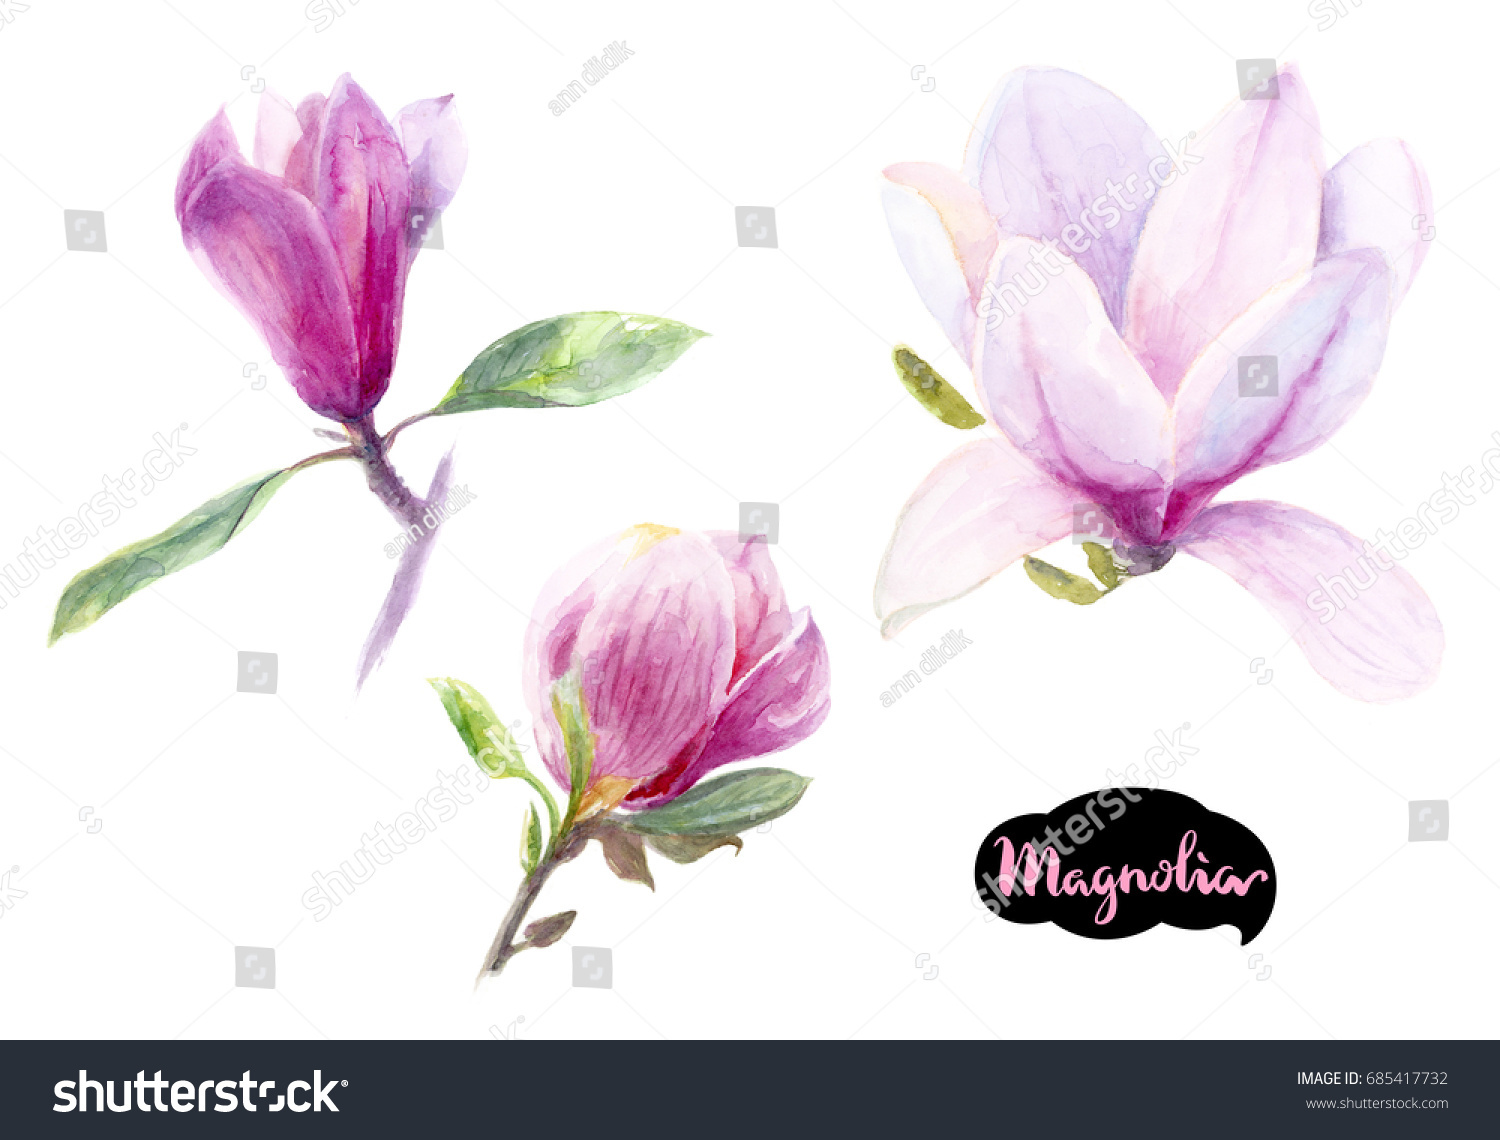 Magnolia flowers watercolor hand draw illustration stock magnolia flowers watercolor hand draw illustration romantic flower template for design cards notebook maxwellsz